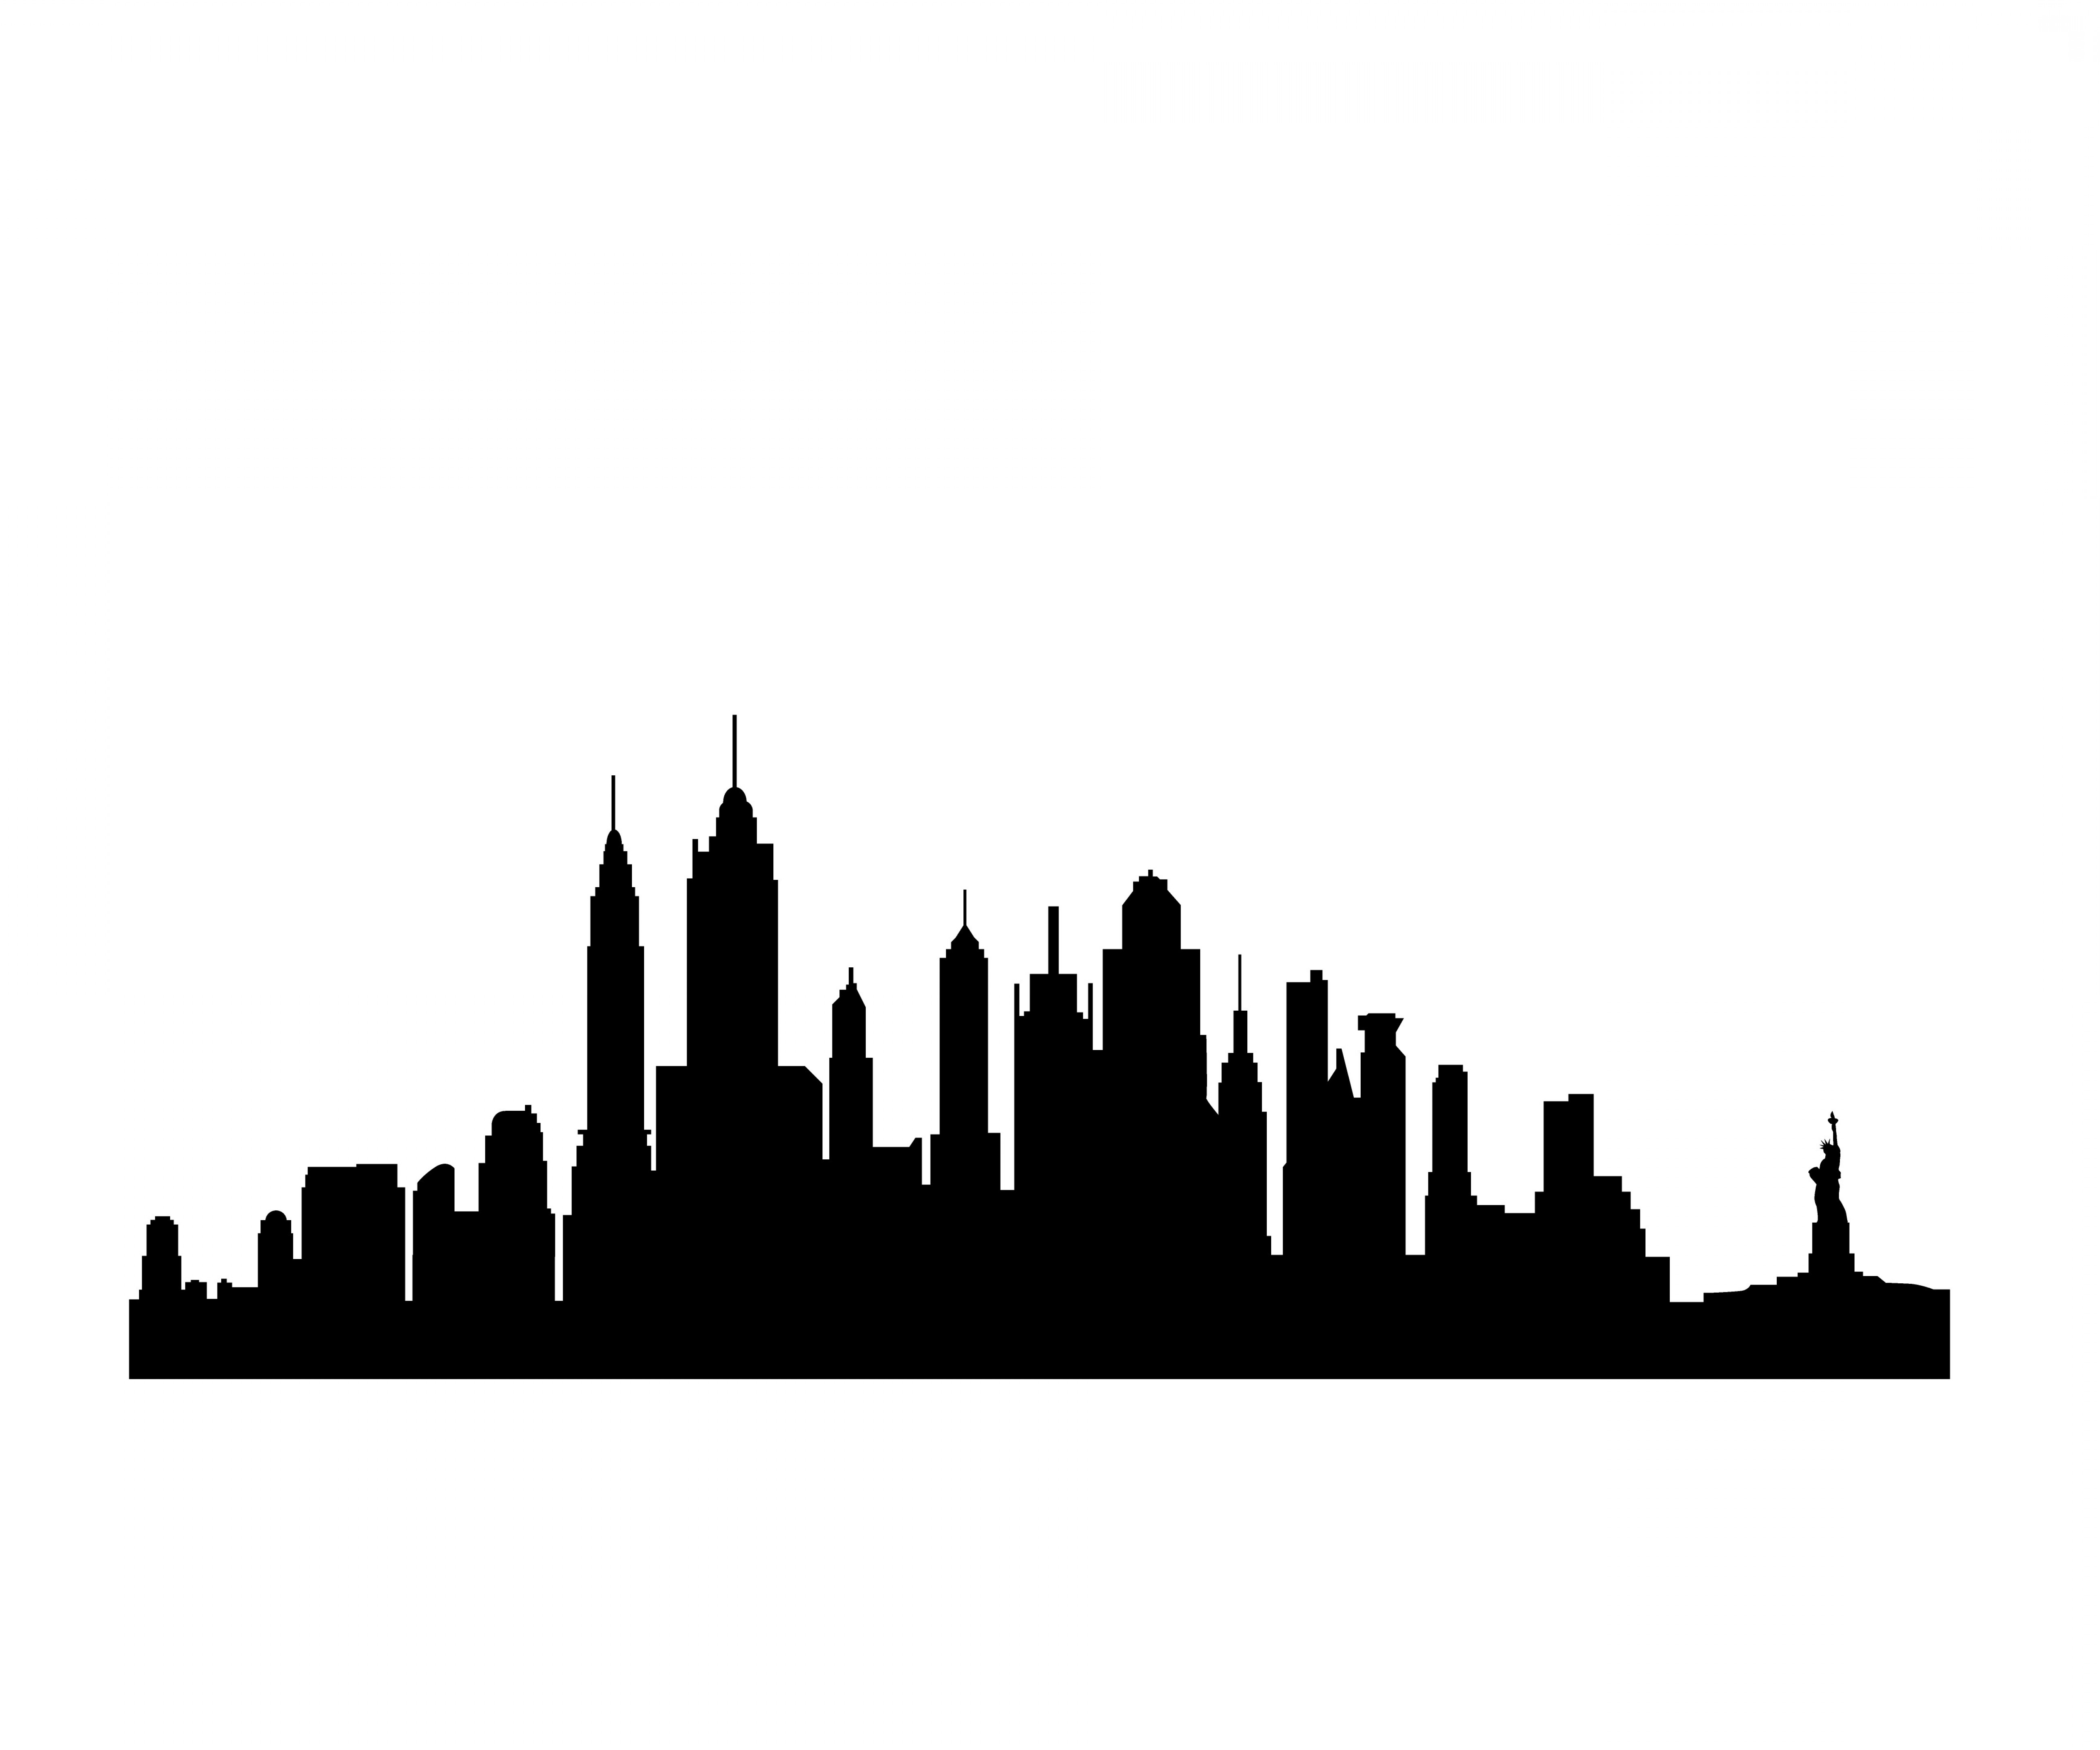 5184x4320 New York City Silhouette Drawing